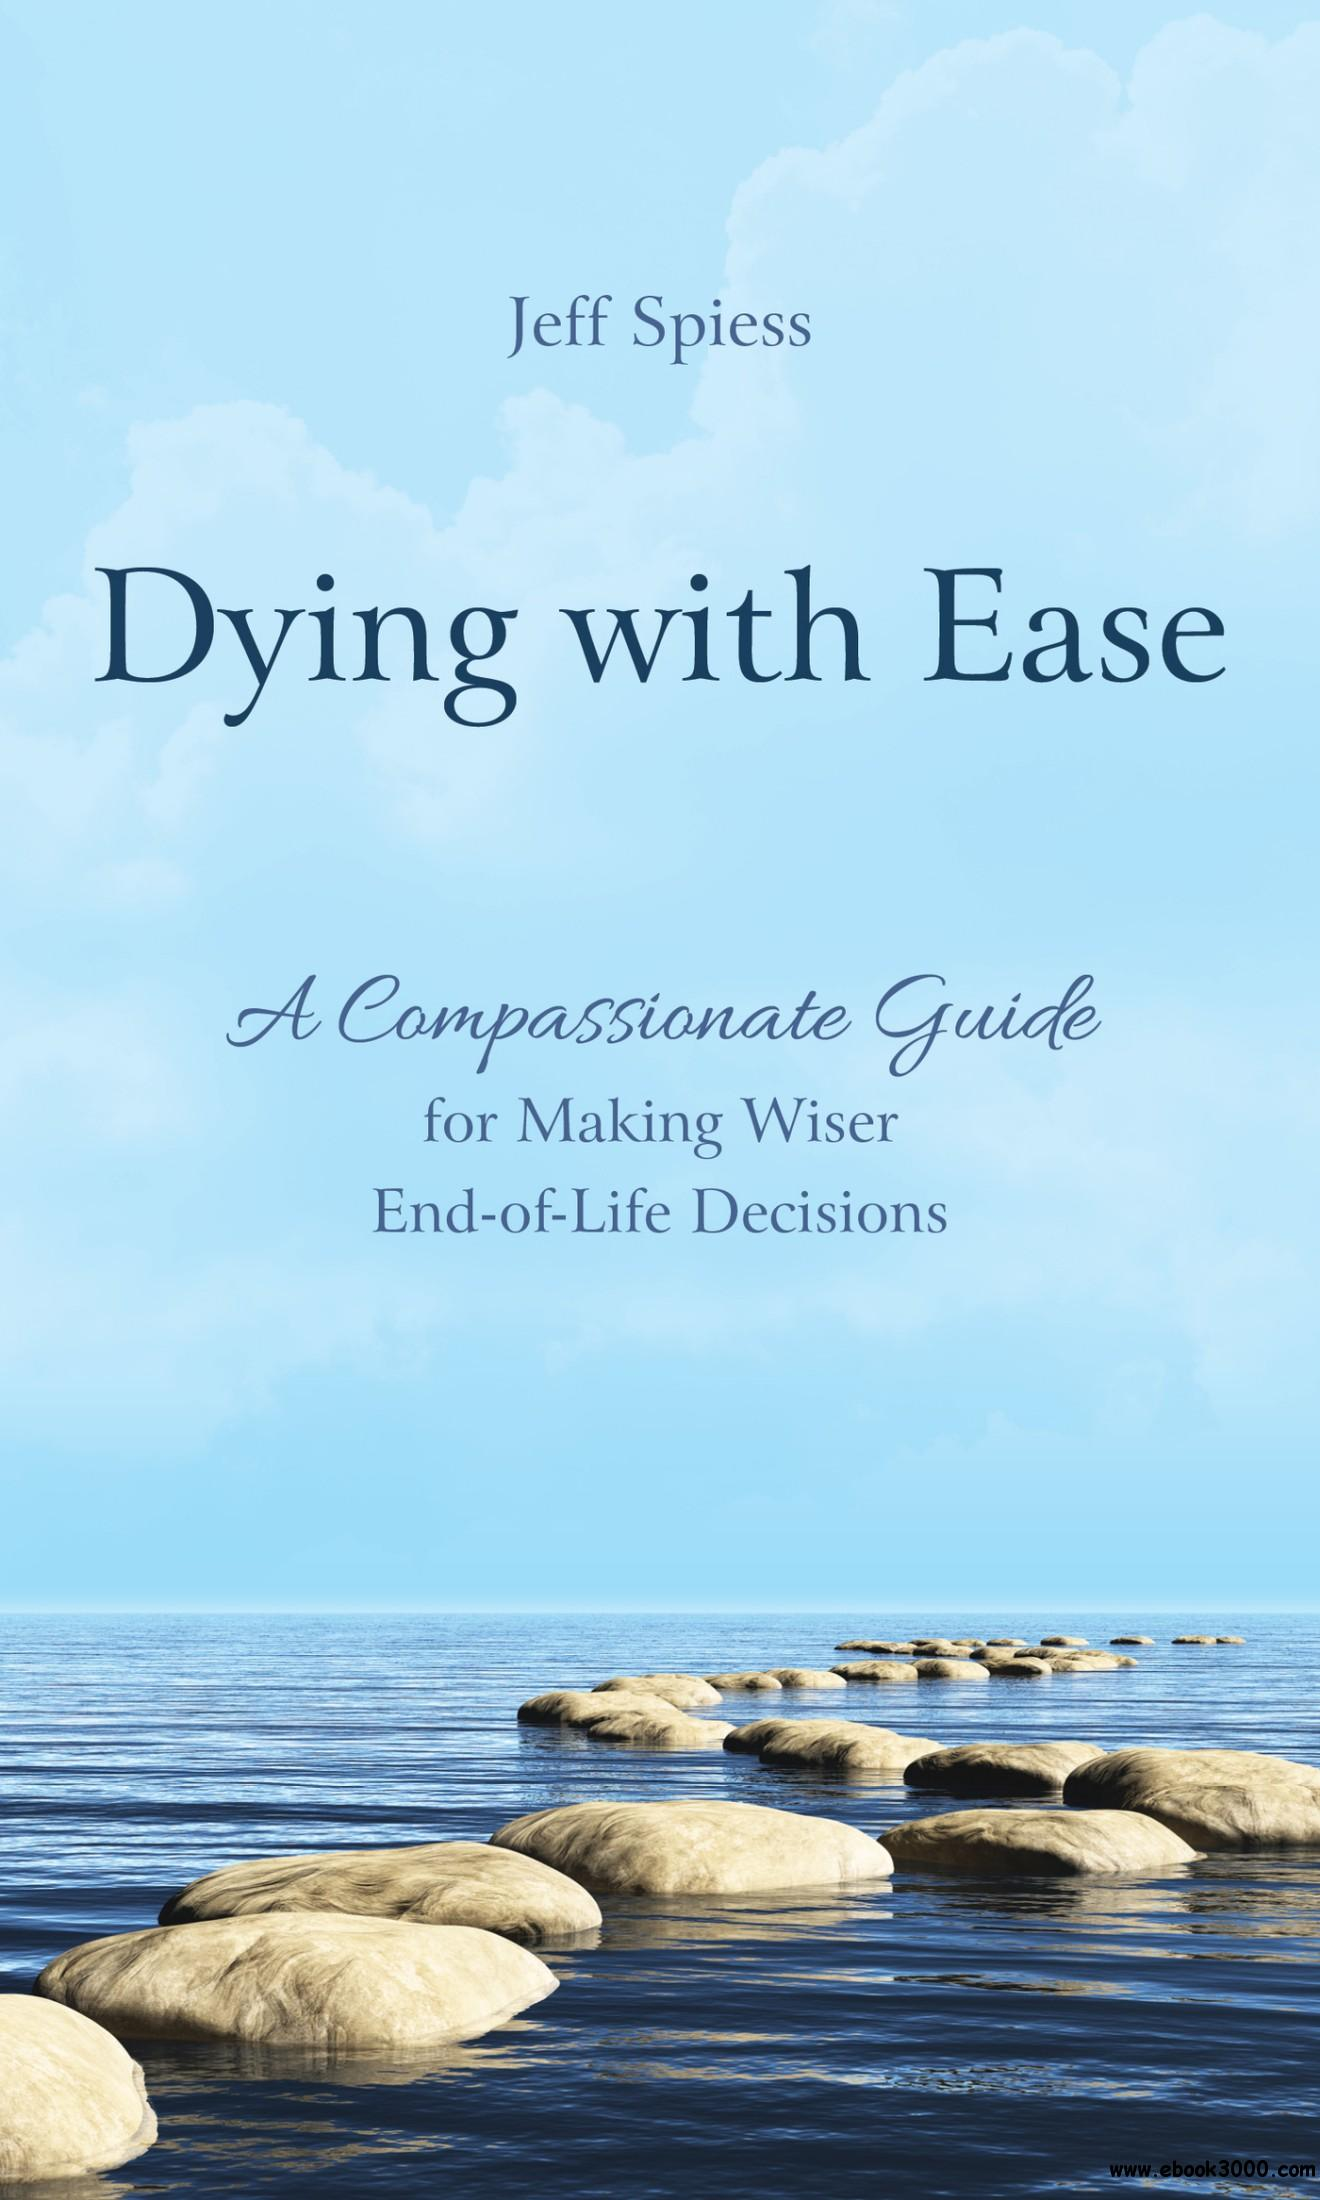 Dying with Ease: A Compassionate Guide for Making Wiser End-of-Life Decisions